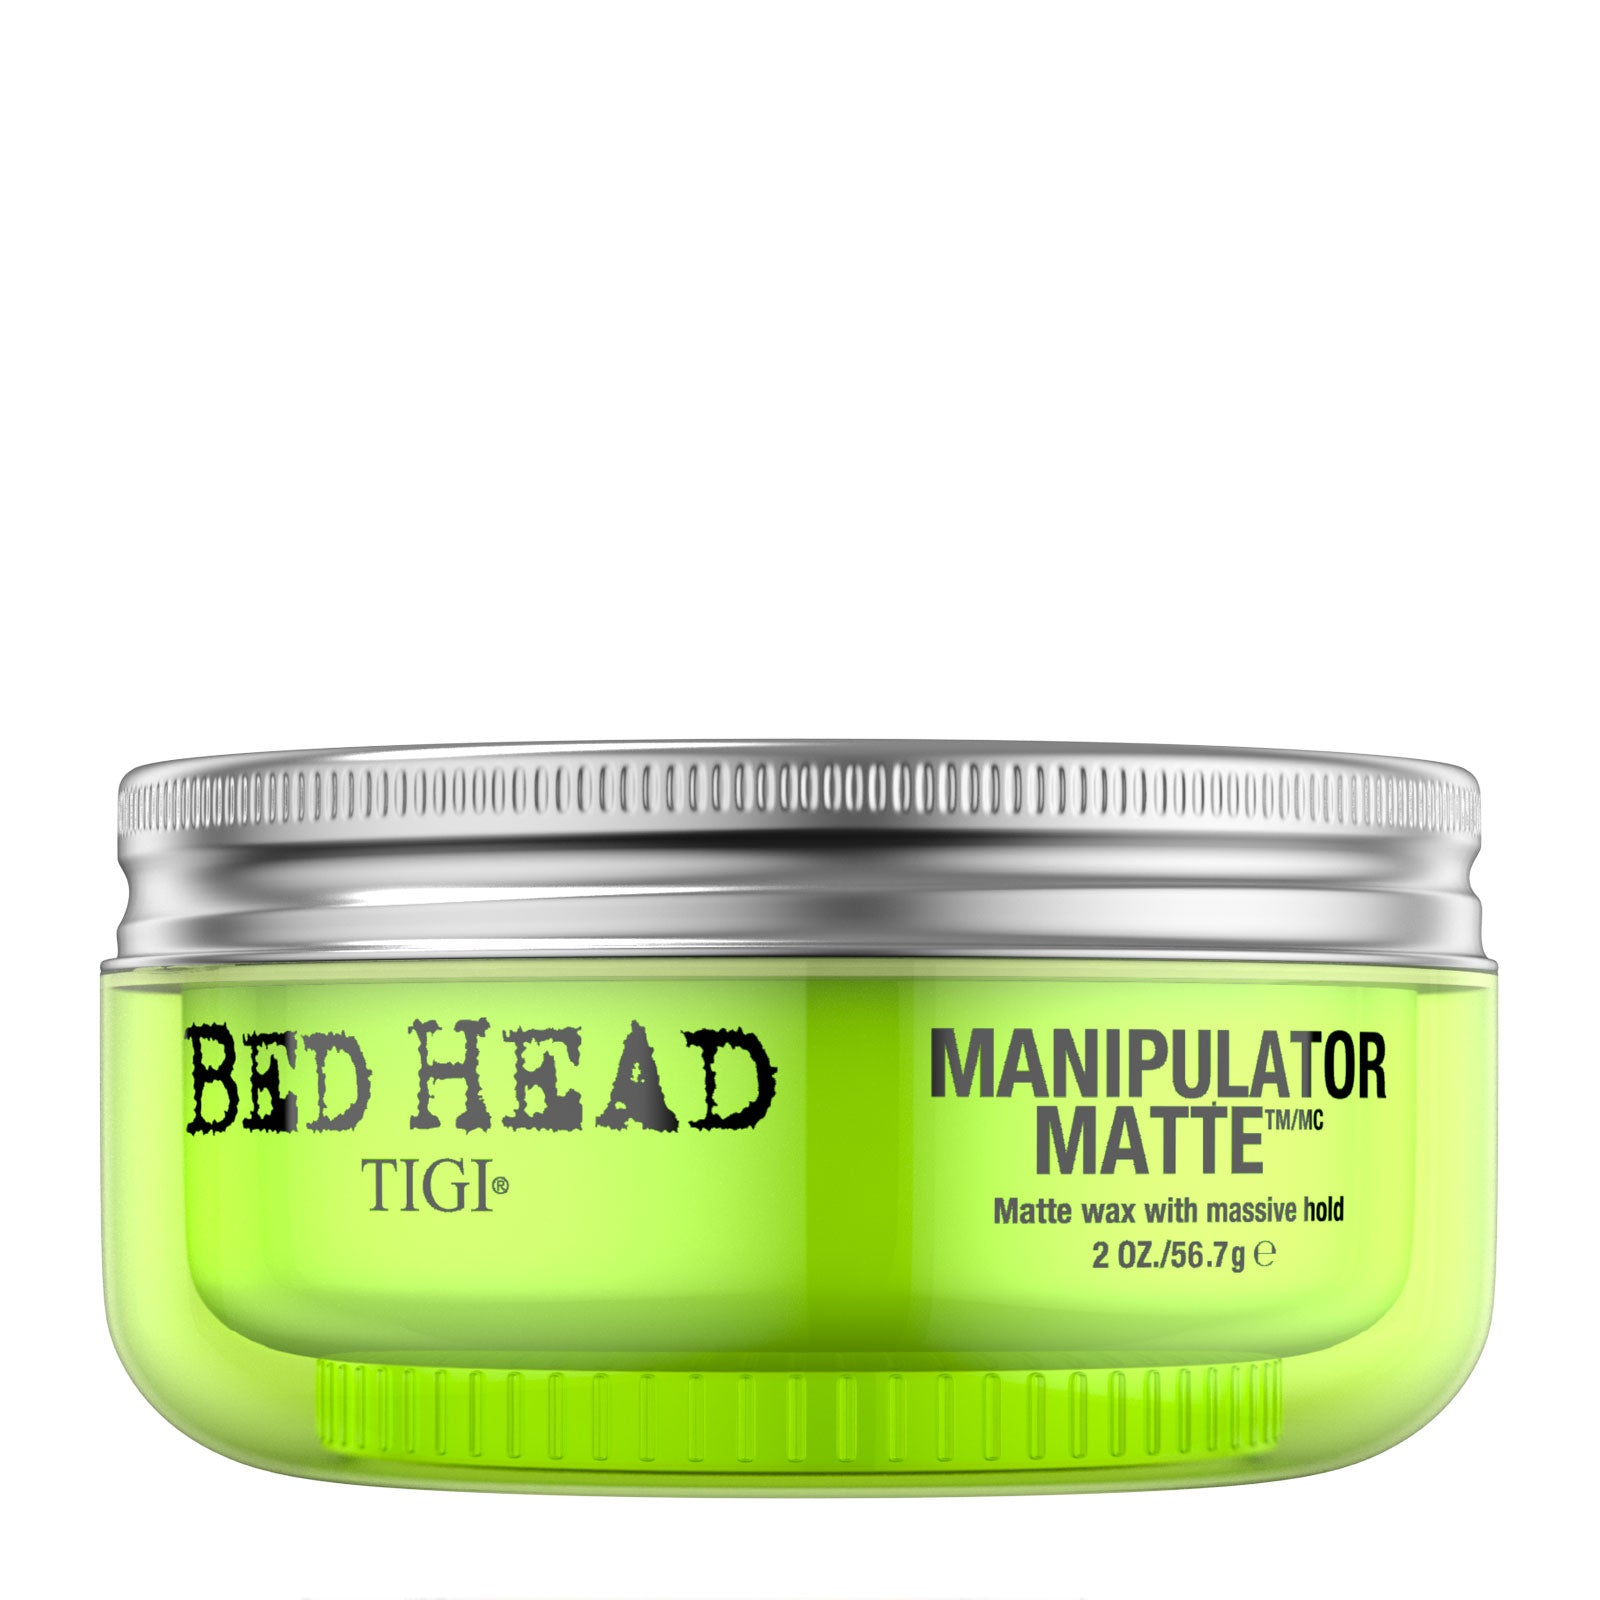 Bed Head by TIGI Manipulator Matte Workable Wax 56.7g